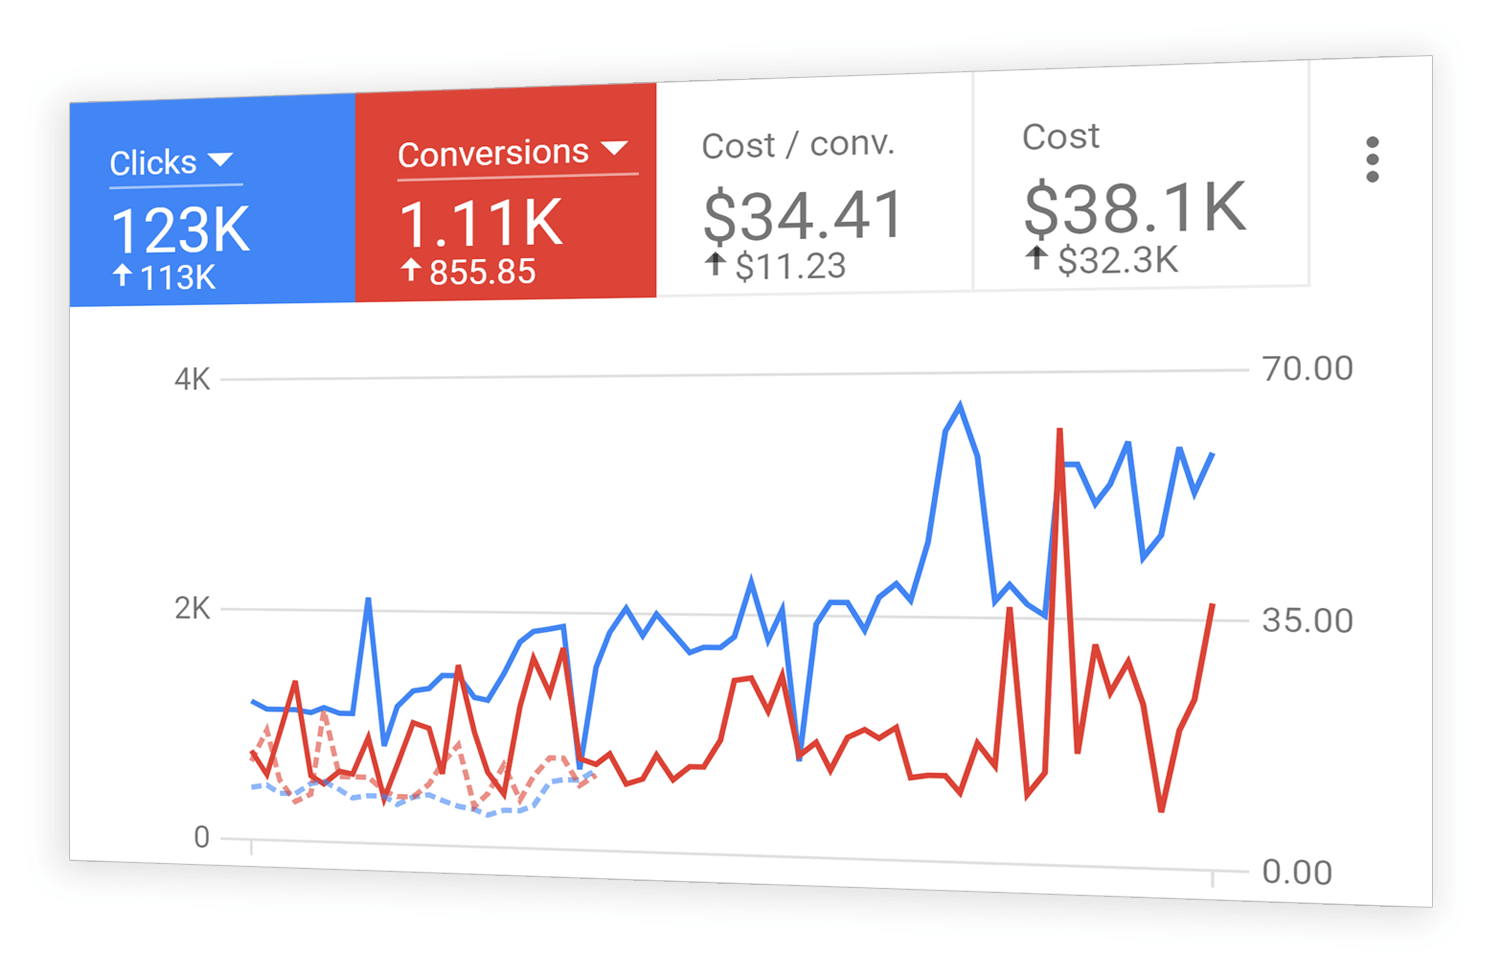 AD1.ONE - Google Ads management prices